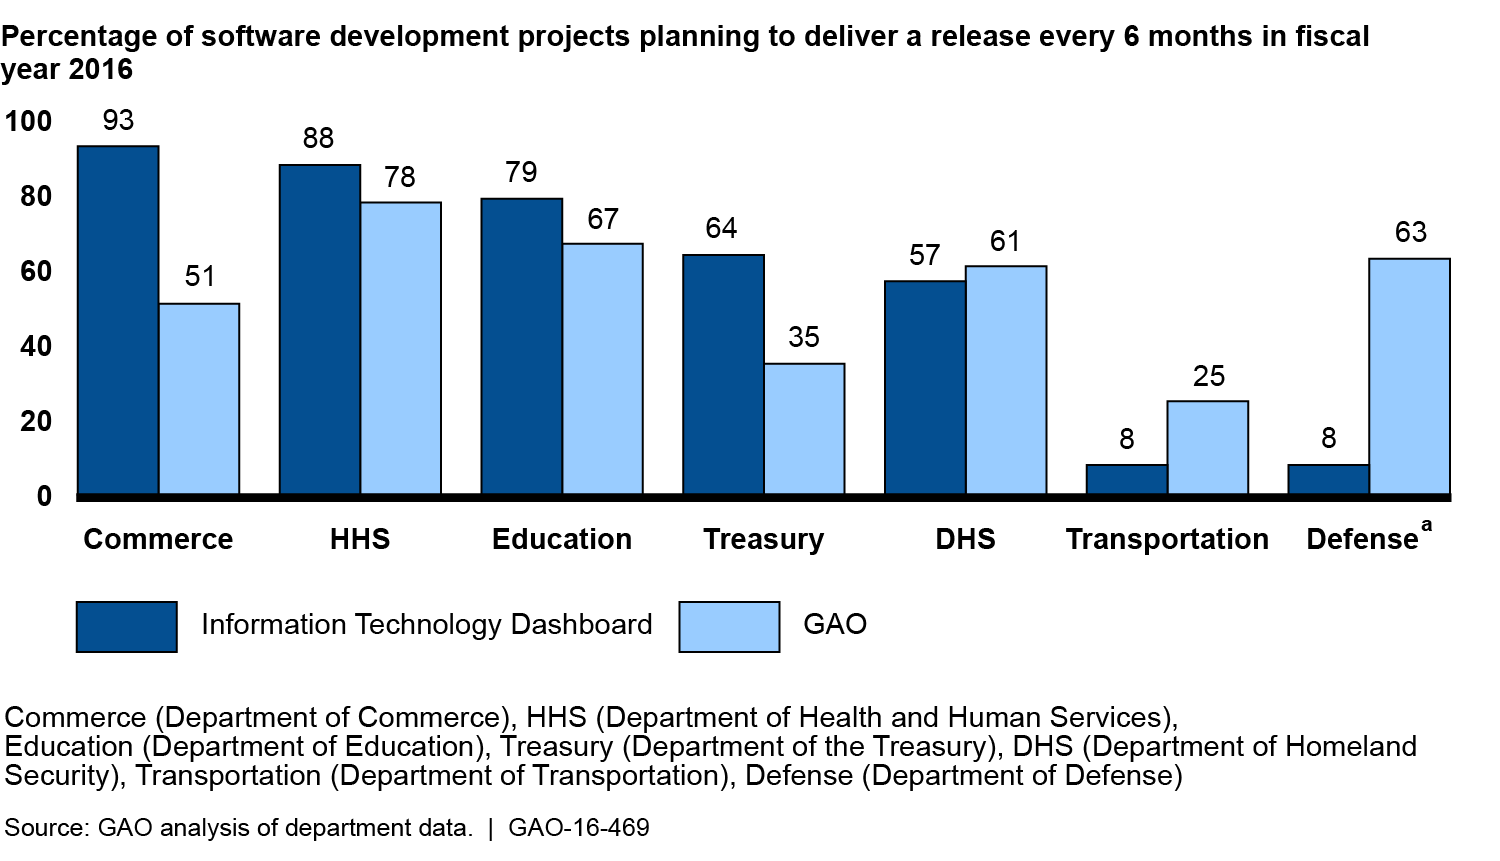 Comparison of Software Development Projects' Percentage of Planned Delivery Every Six Months Reported on IT Dashboard and to GAO for Fiscal Year 2016